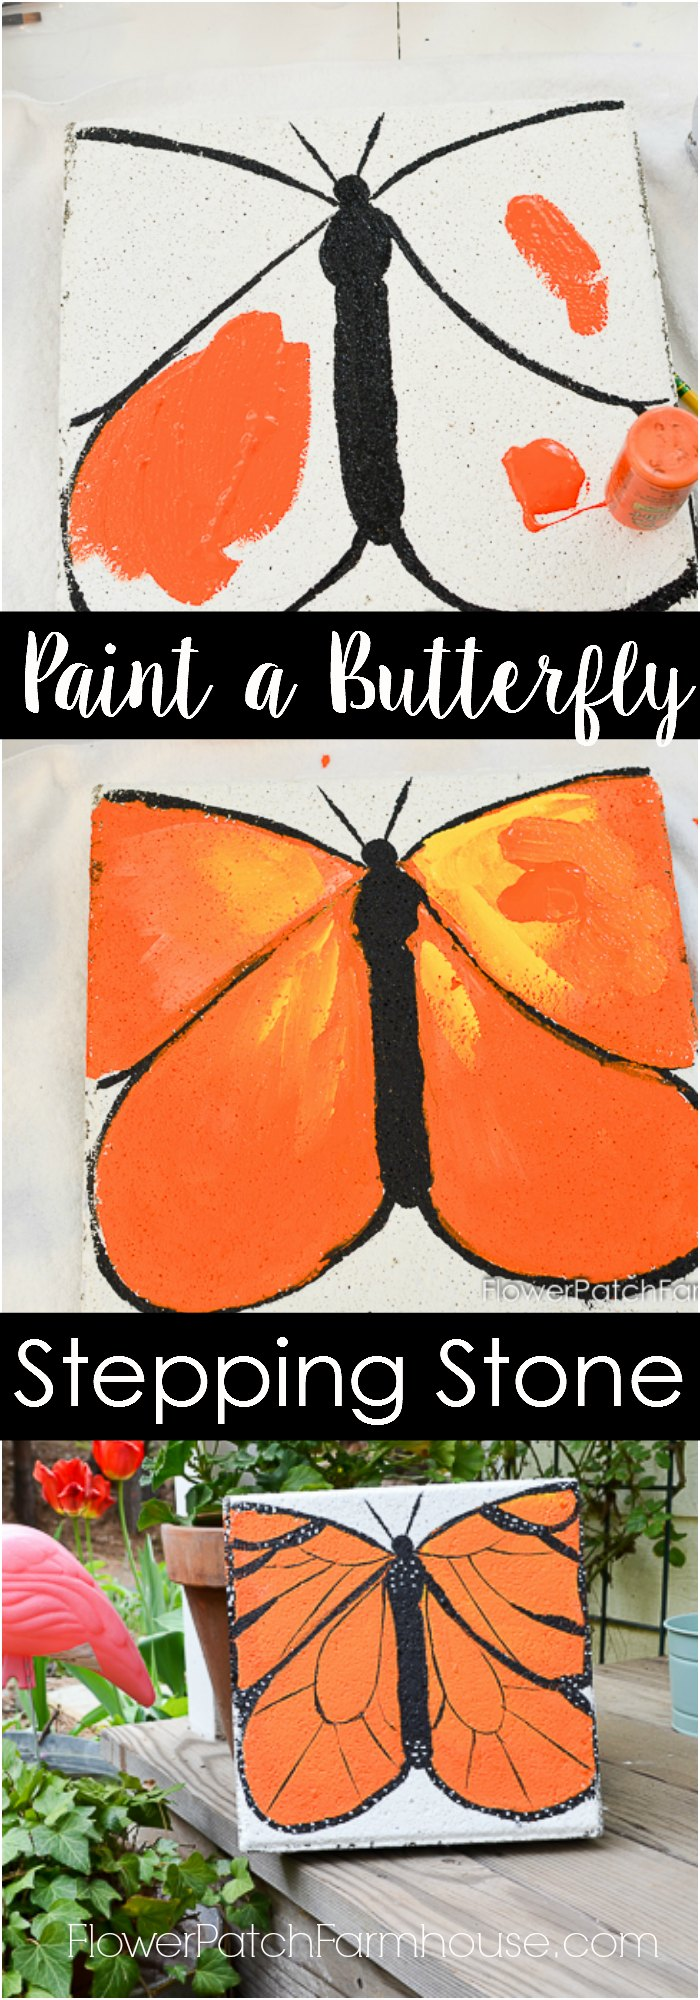 Turn a plain concrete stepping stone paver into a beautiful butterfly.  A gorgeous metamorphoses created with paint.  Your garden can be filled with butterflies even in winter! Simple step by step instructions for every level of ability.